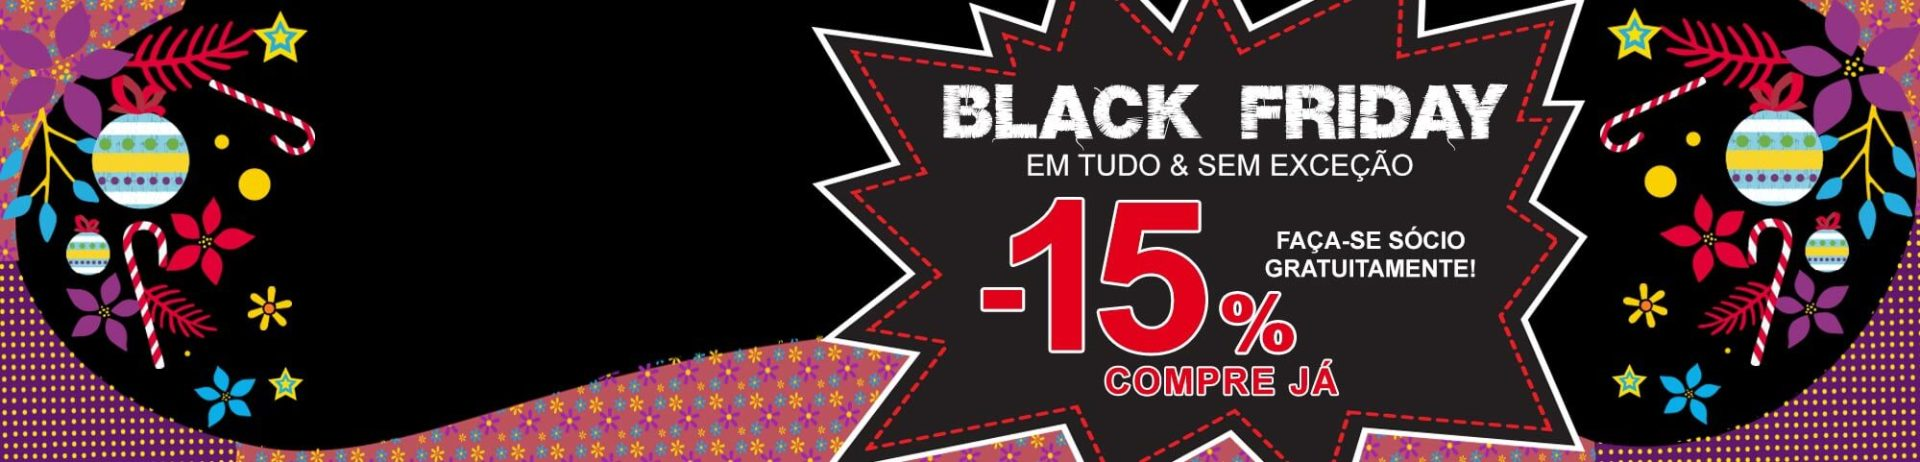 imaginarium blackfriday